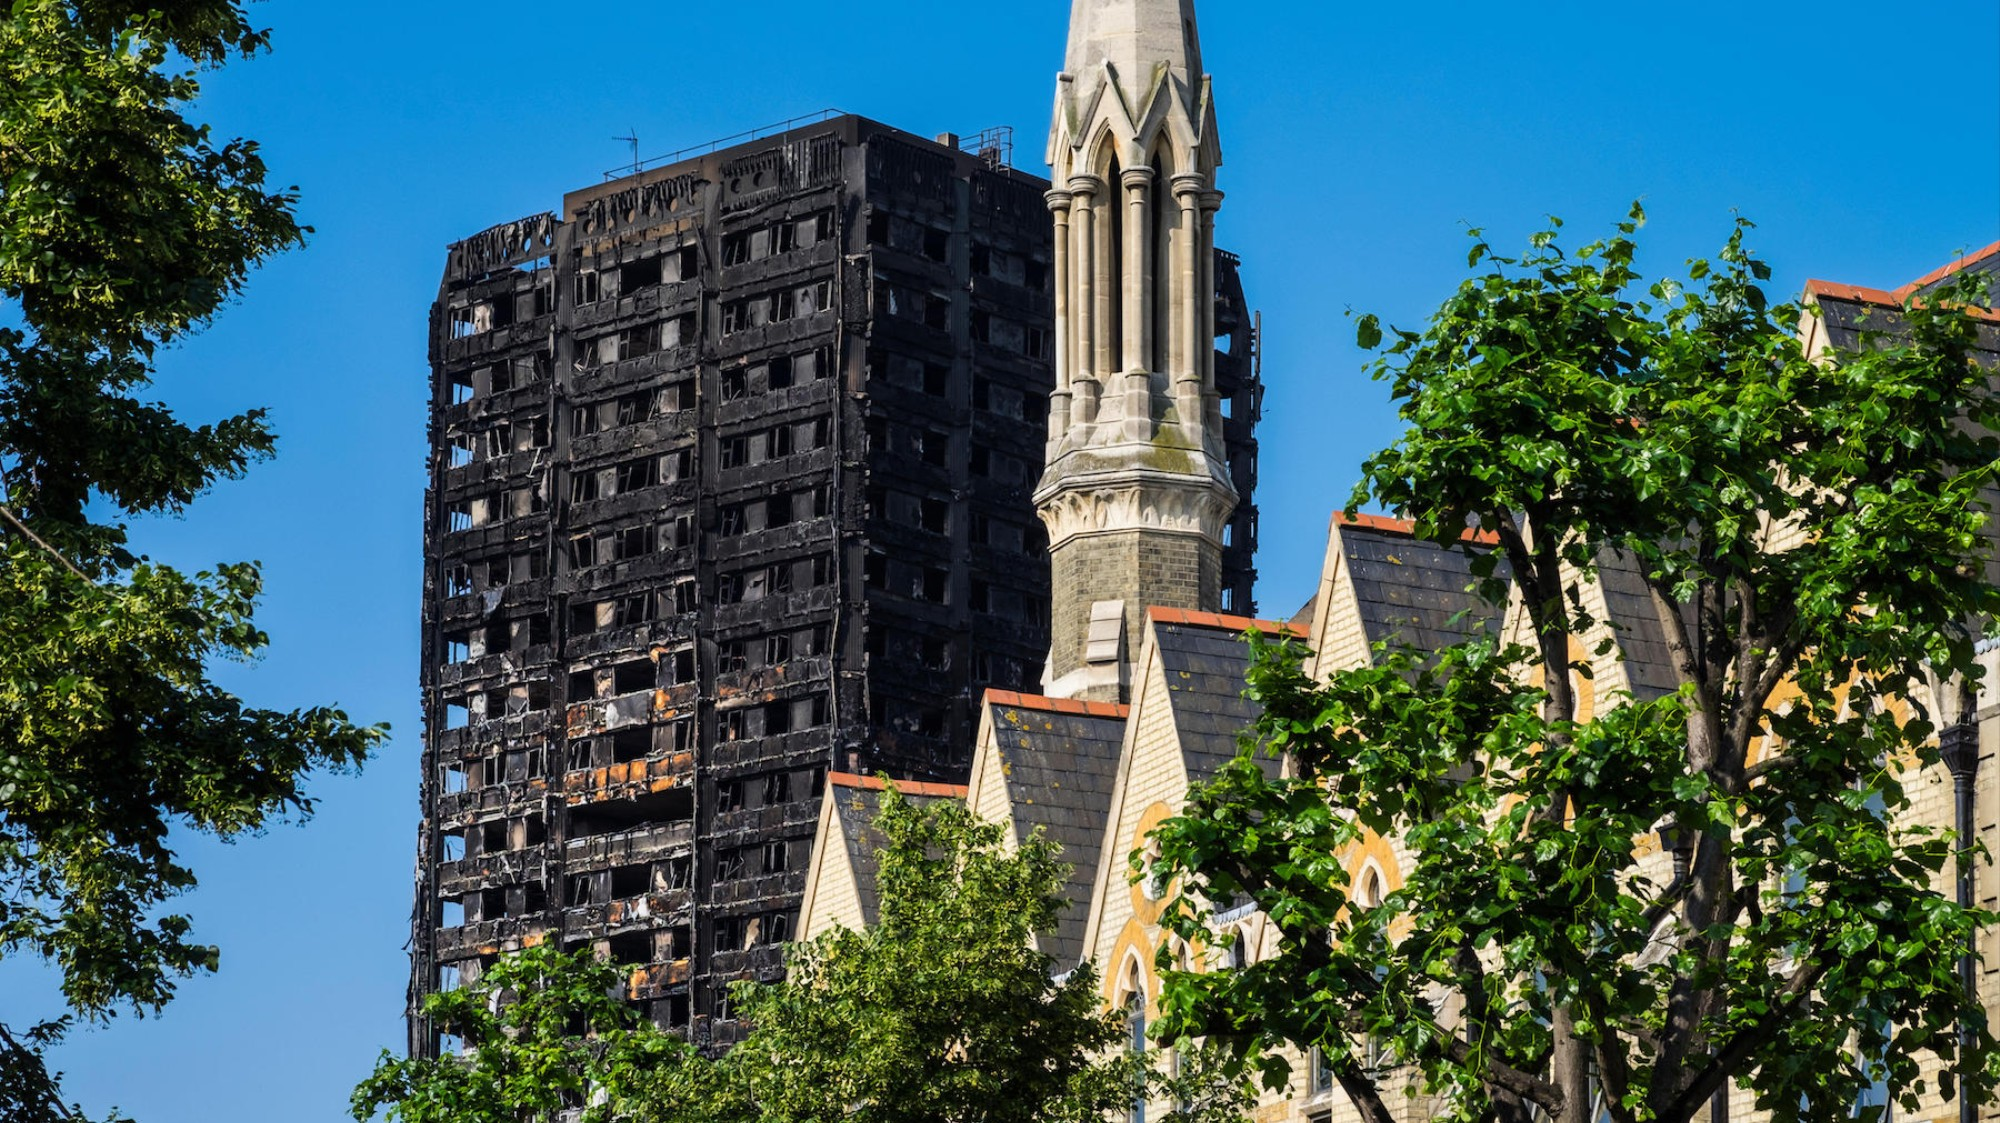 Revealed: Nearly Half of All Tower Blocks Have Failed Fire